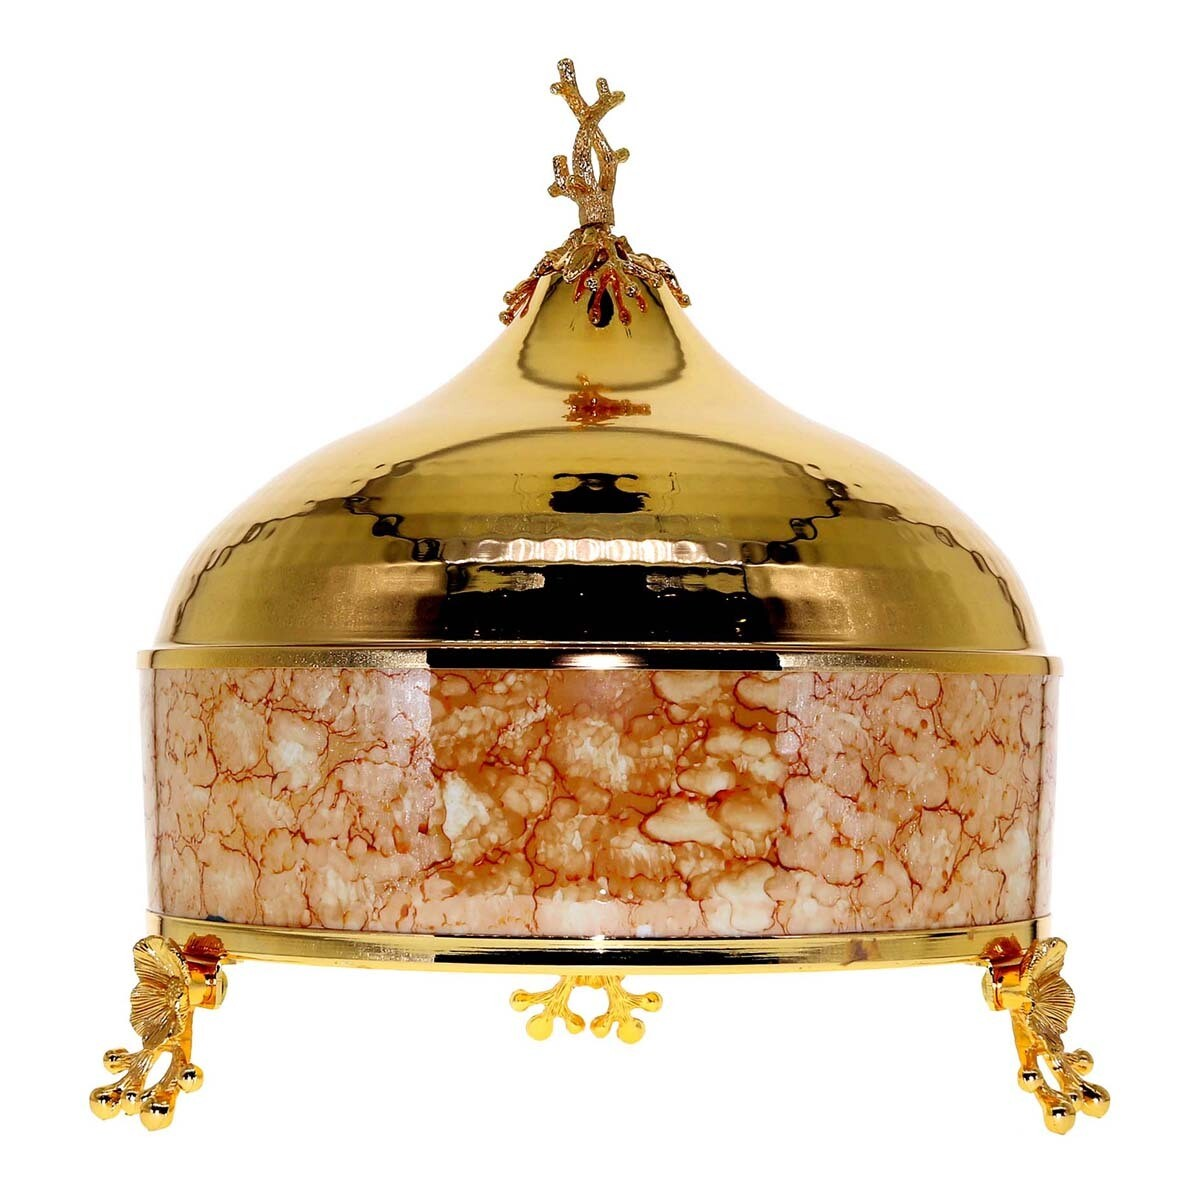 Liying Big Buffet Bowl with Cover and Food Server 26cm Diameter, Gold Multicolour 30x26x30 centimeter